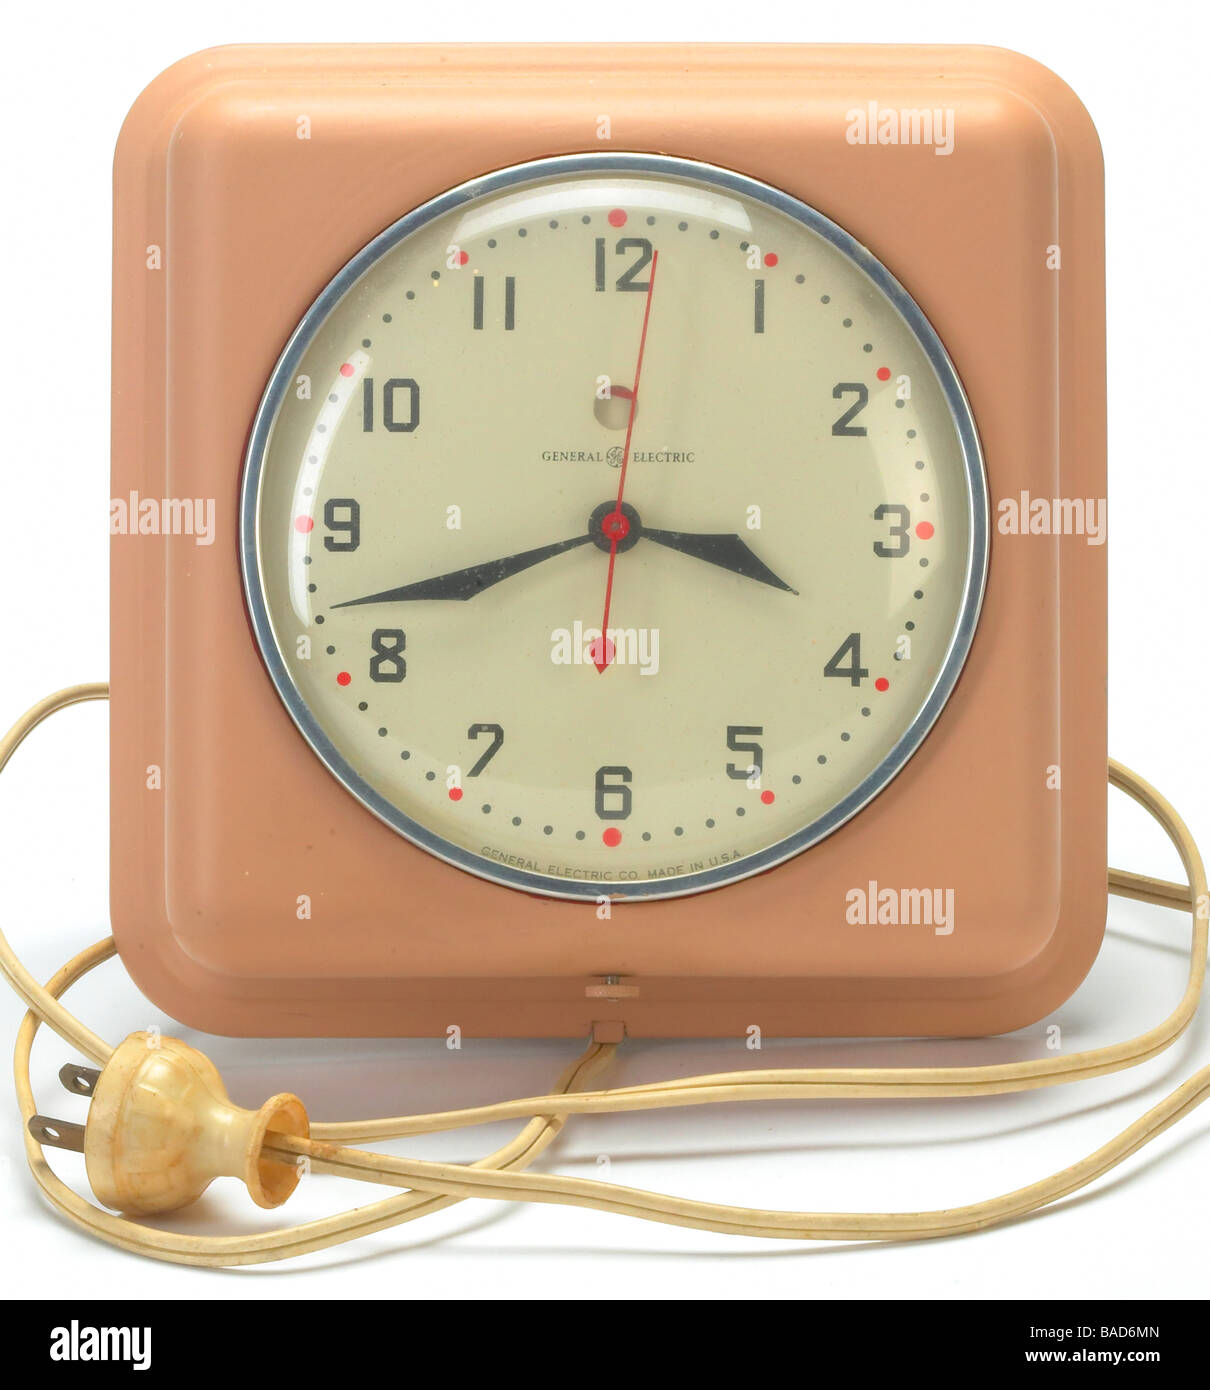 Electric Clock Stock Photos Images Alamy How To Build 28 Led Timer Old General Cut Out Image